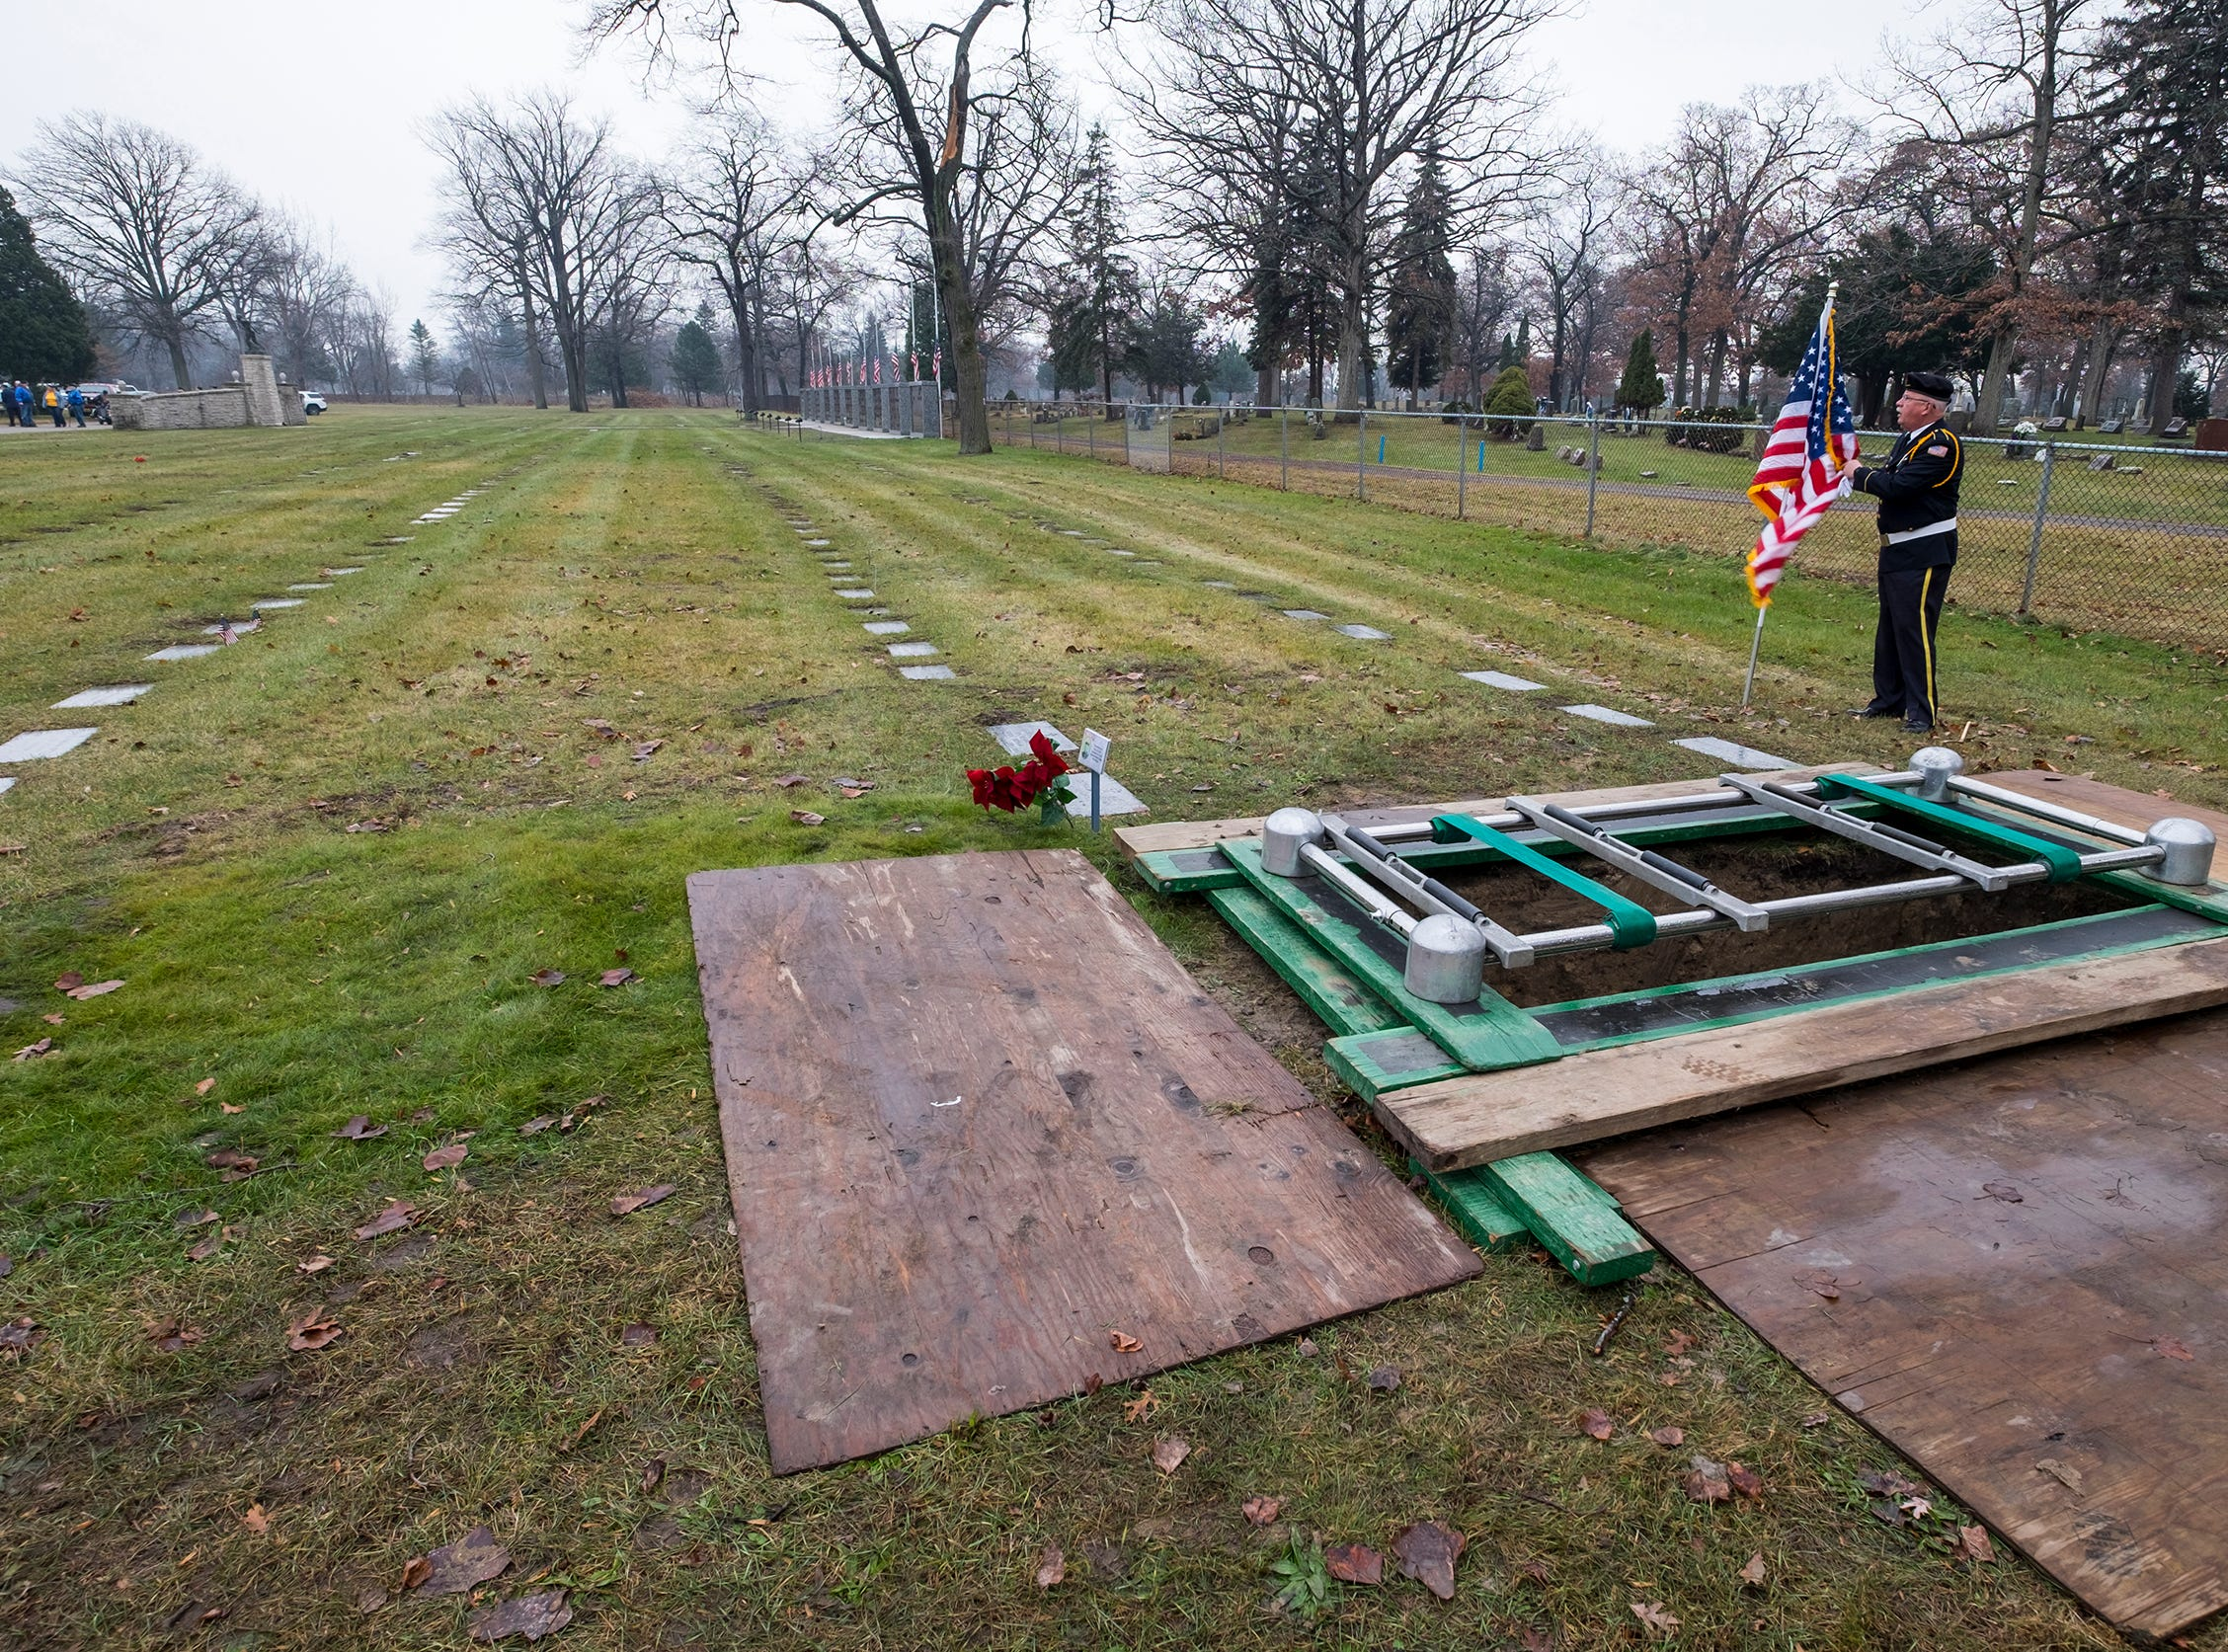 St. Clair County Allied Veterans Council Honor Guard member Lee Pochert sets an American flag next to the gravesite for Joseph A. Humphries Friday, Dec. 14, 2018 at the Allied Veterans Cemetery in Fort Gratiot.